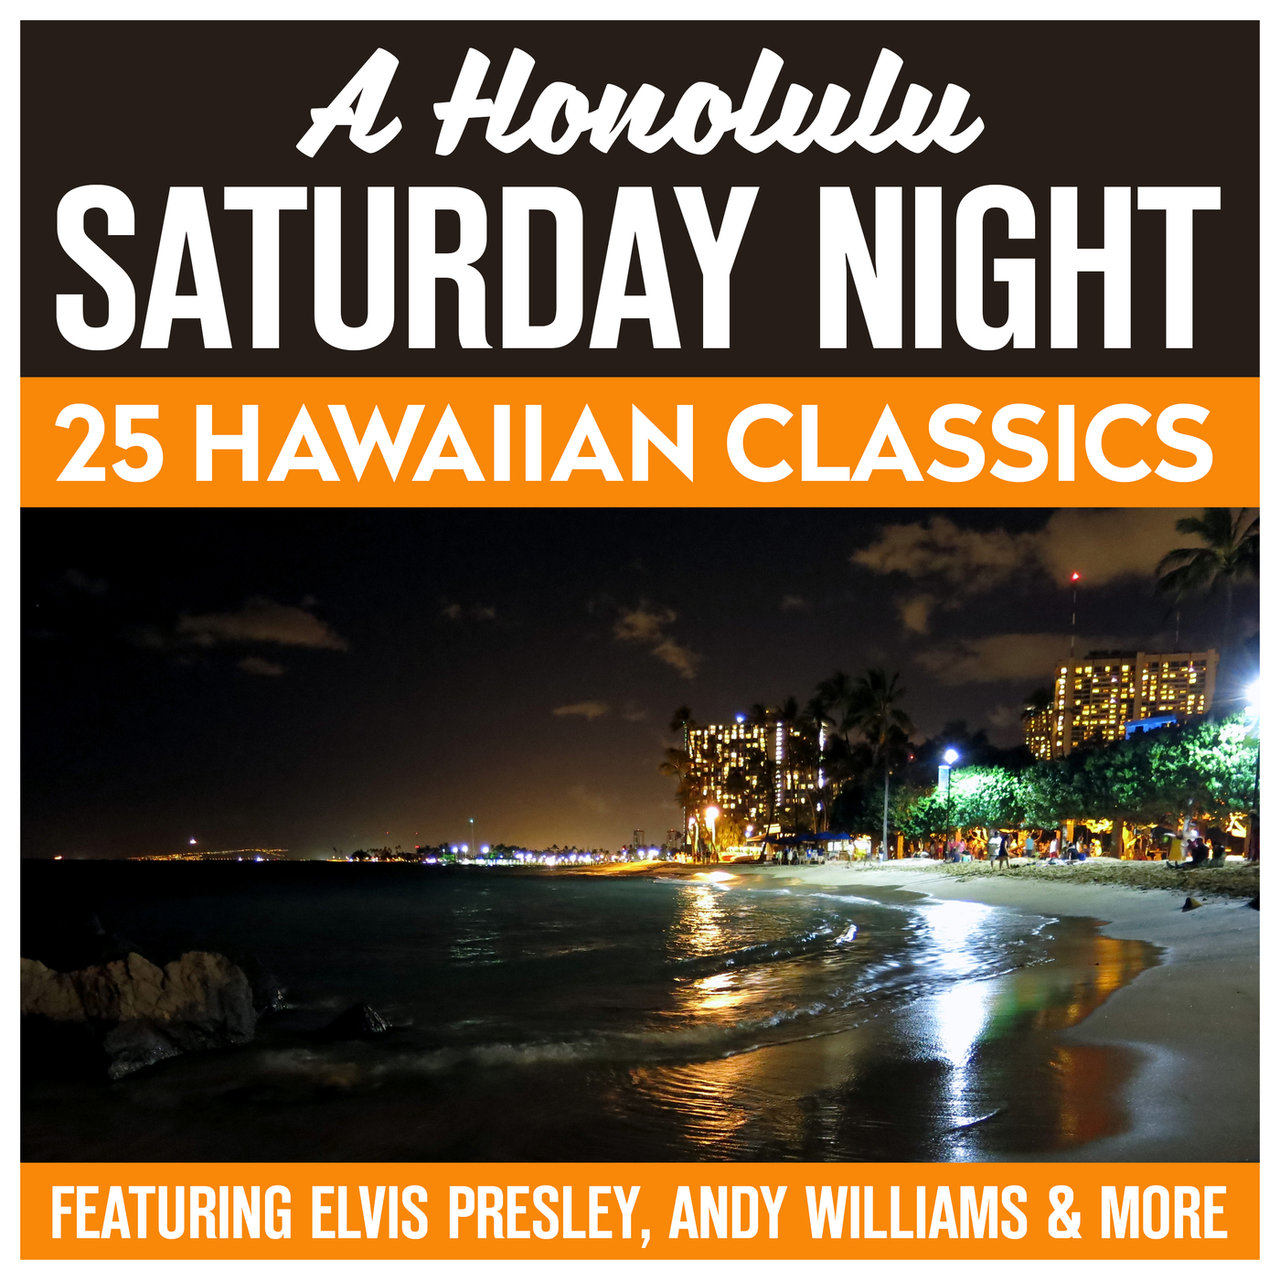 A Honolulu Saturday Night - 25 Hawaiian Classics